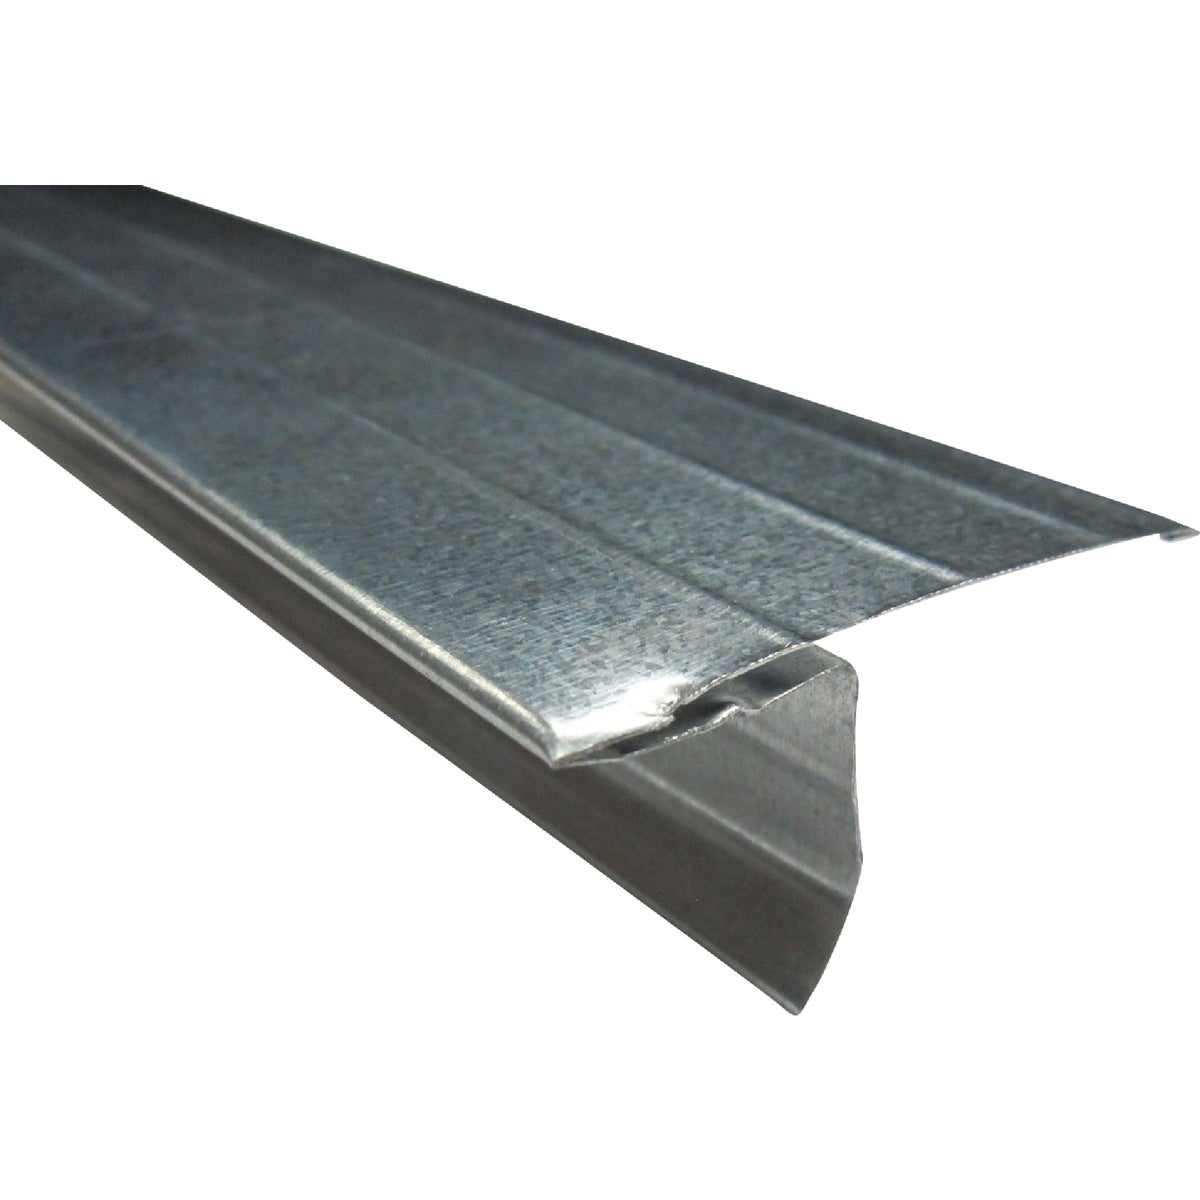 "4-1/2"" STYLE D ROOF EDGE - 32515-GV10 by Klauer Mfg Co"